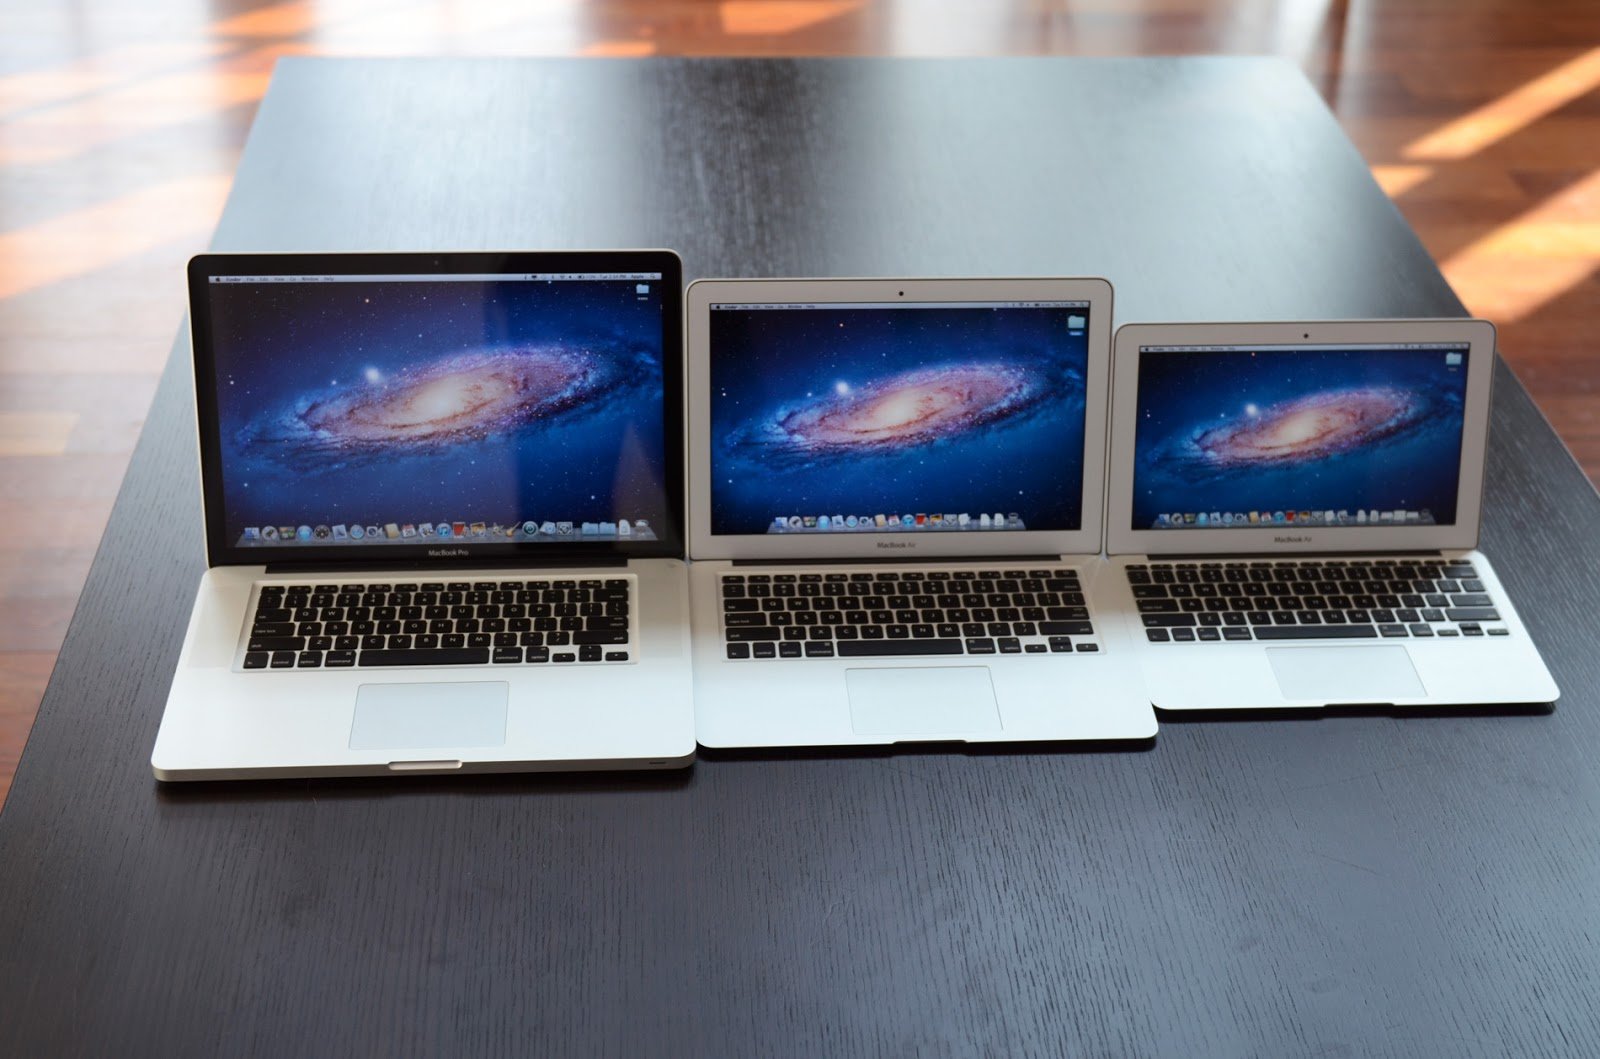 Ini Bedanya Apple MacBook, MacBook Air dan MacBook Pro - Berita